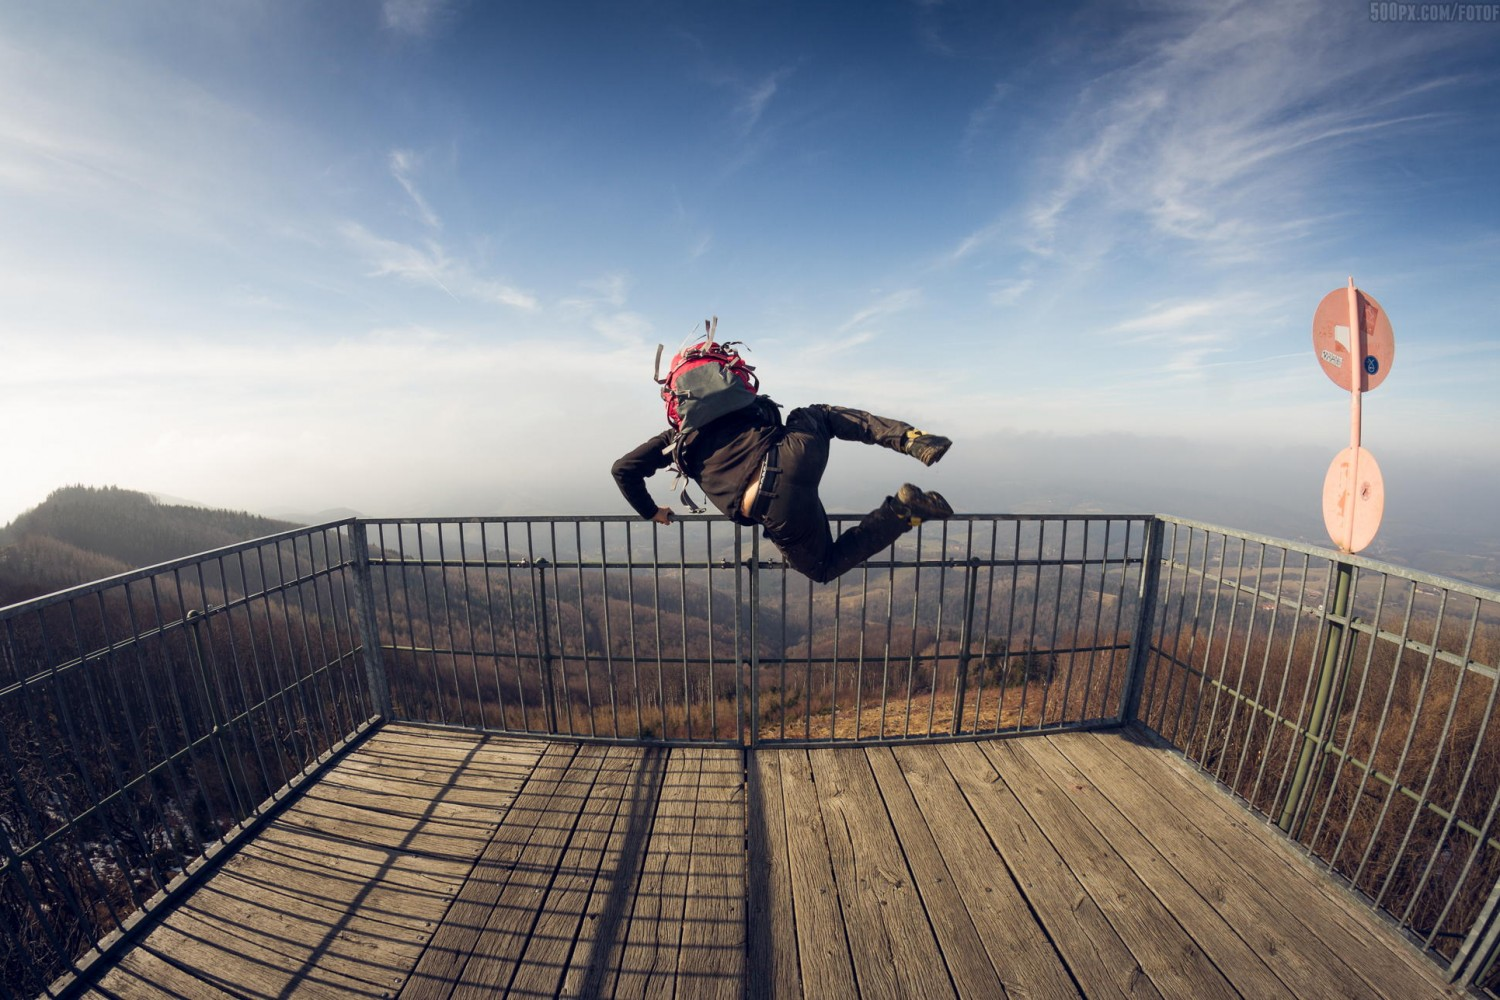 Weekly Contest: 29 Action-Packed Jumping Photos + New Blue Hour Theme